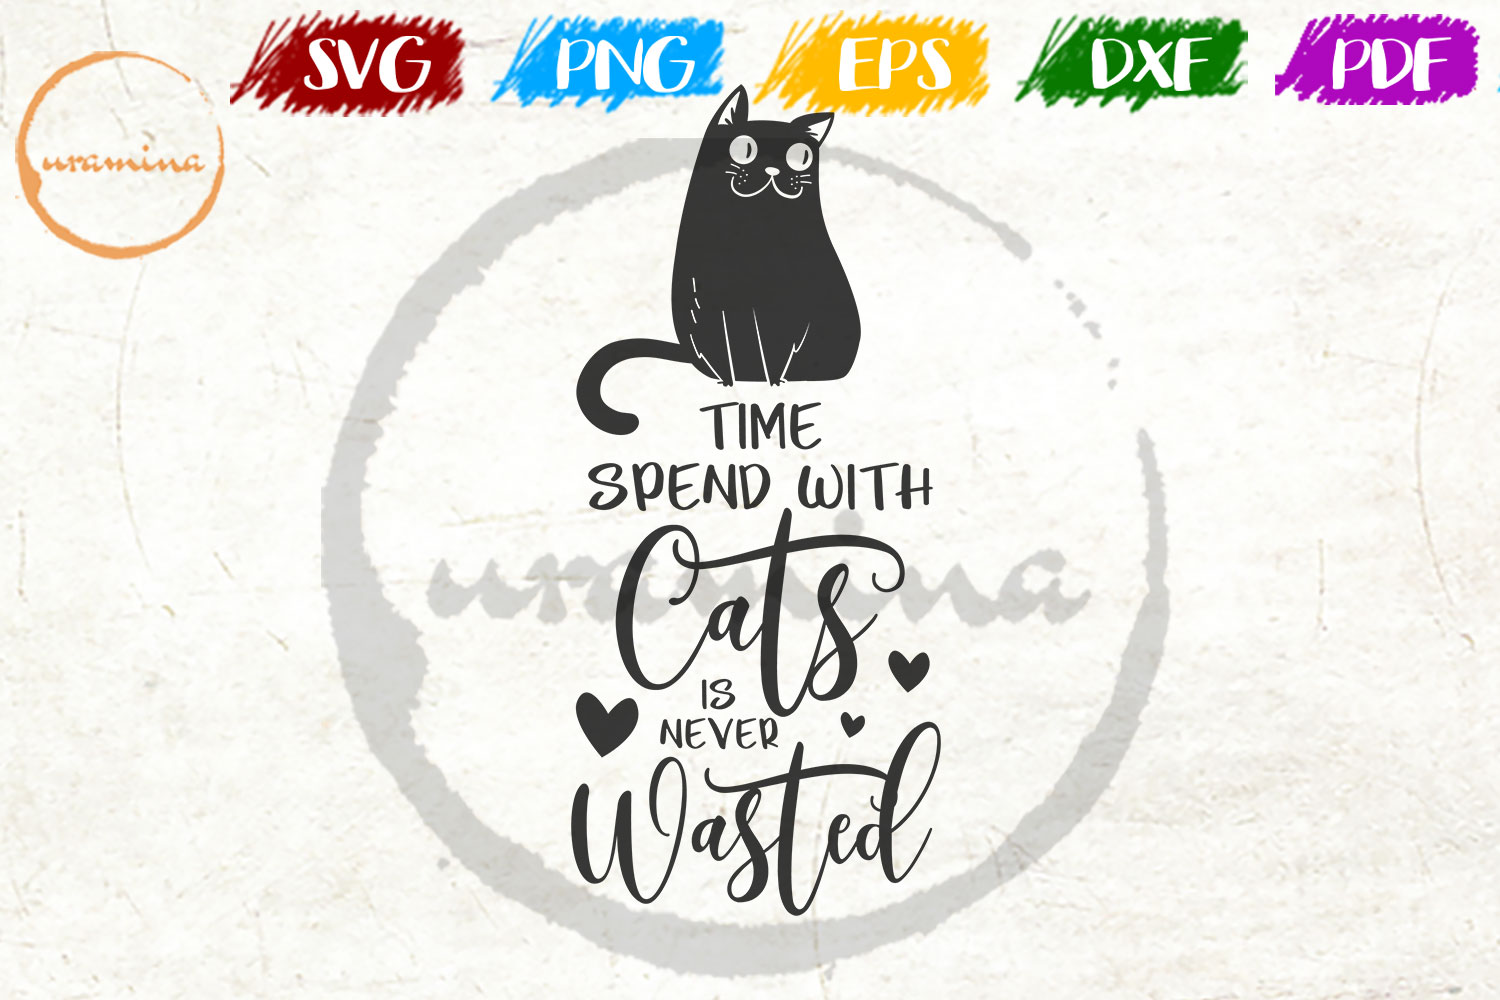 Download Free Time Spent With Cats Is Never Wasted Graphic By Uramina for Cricut Explore, Silhouette and other cutting machines.